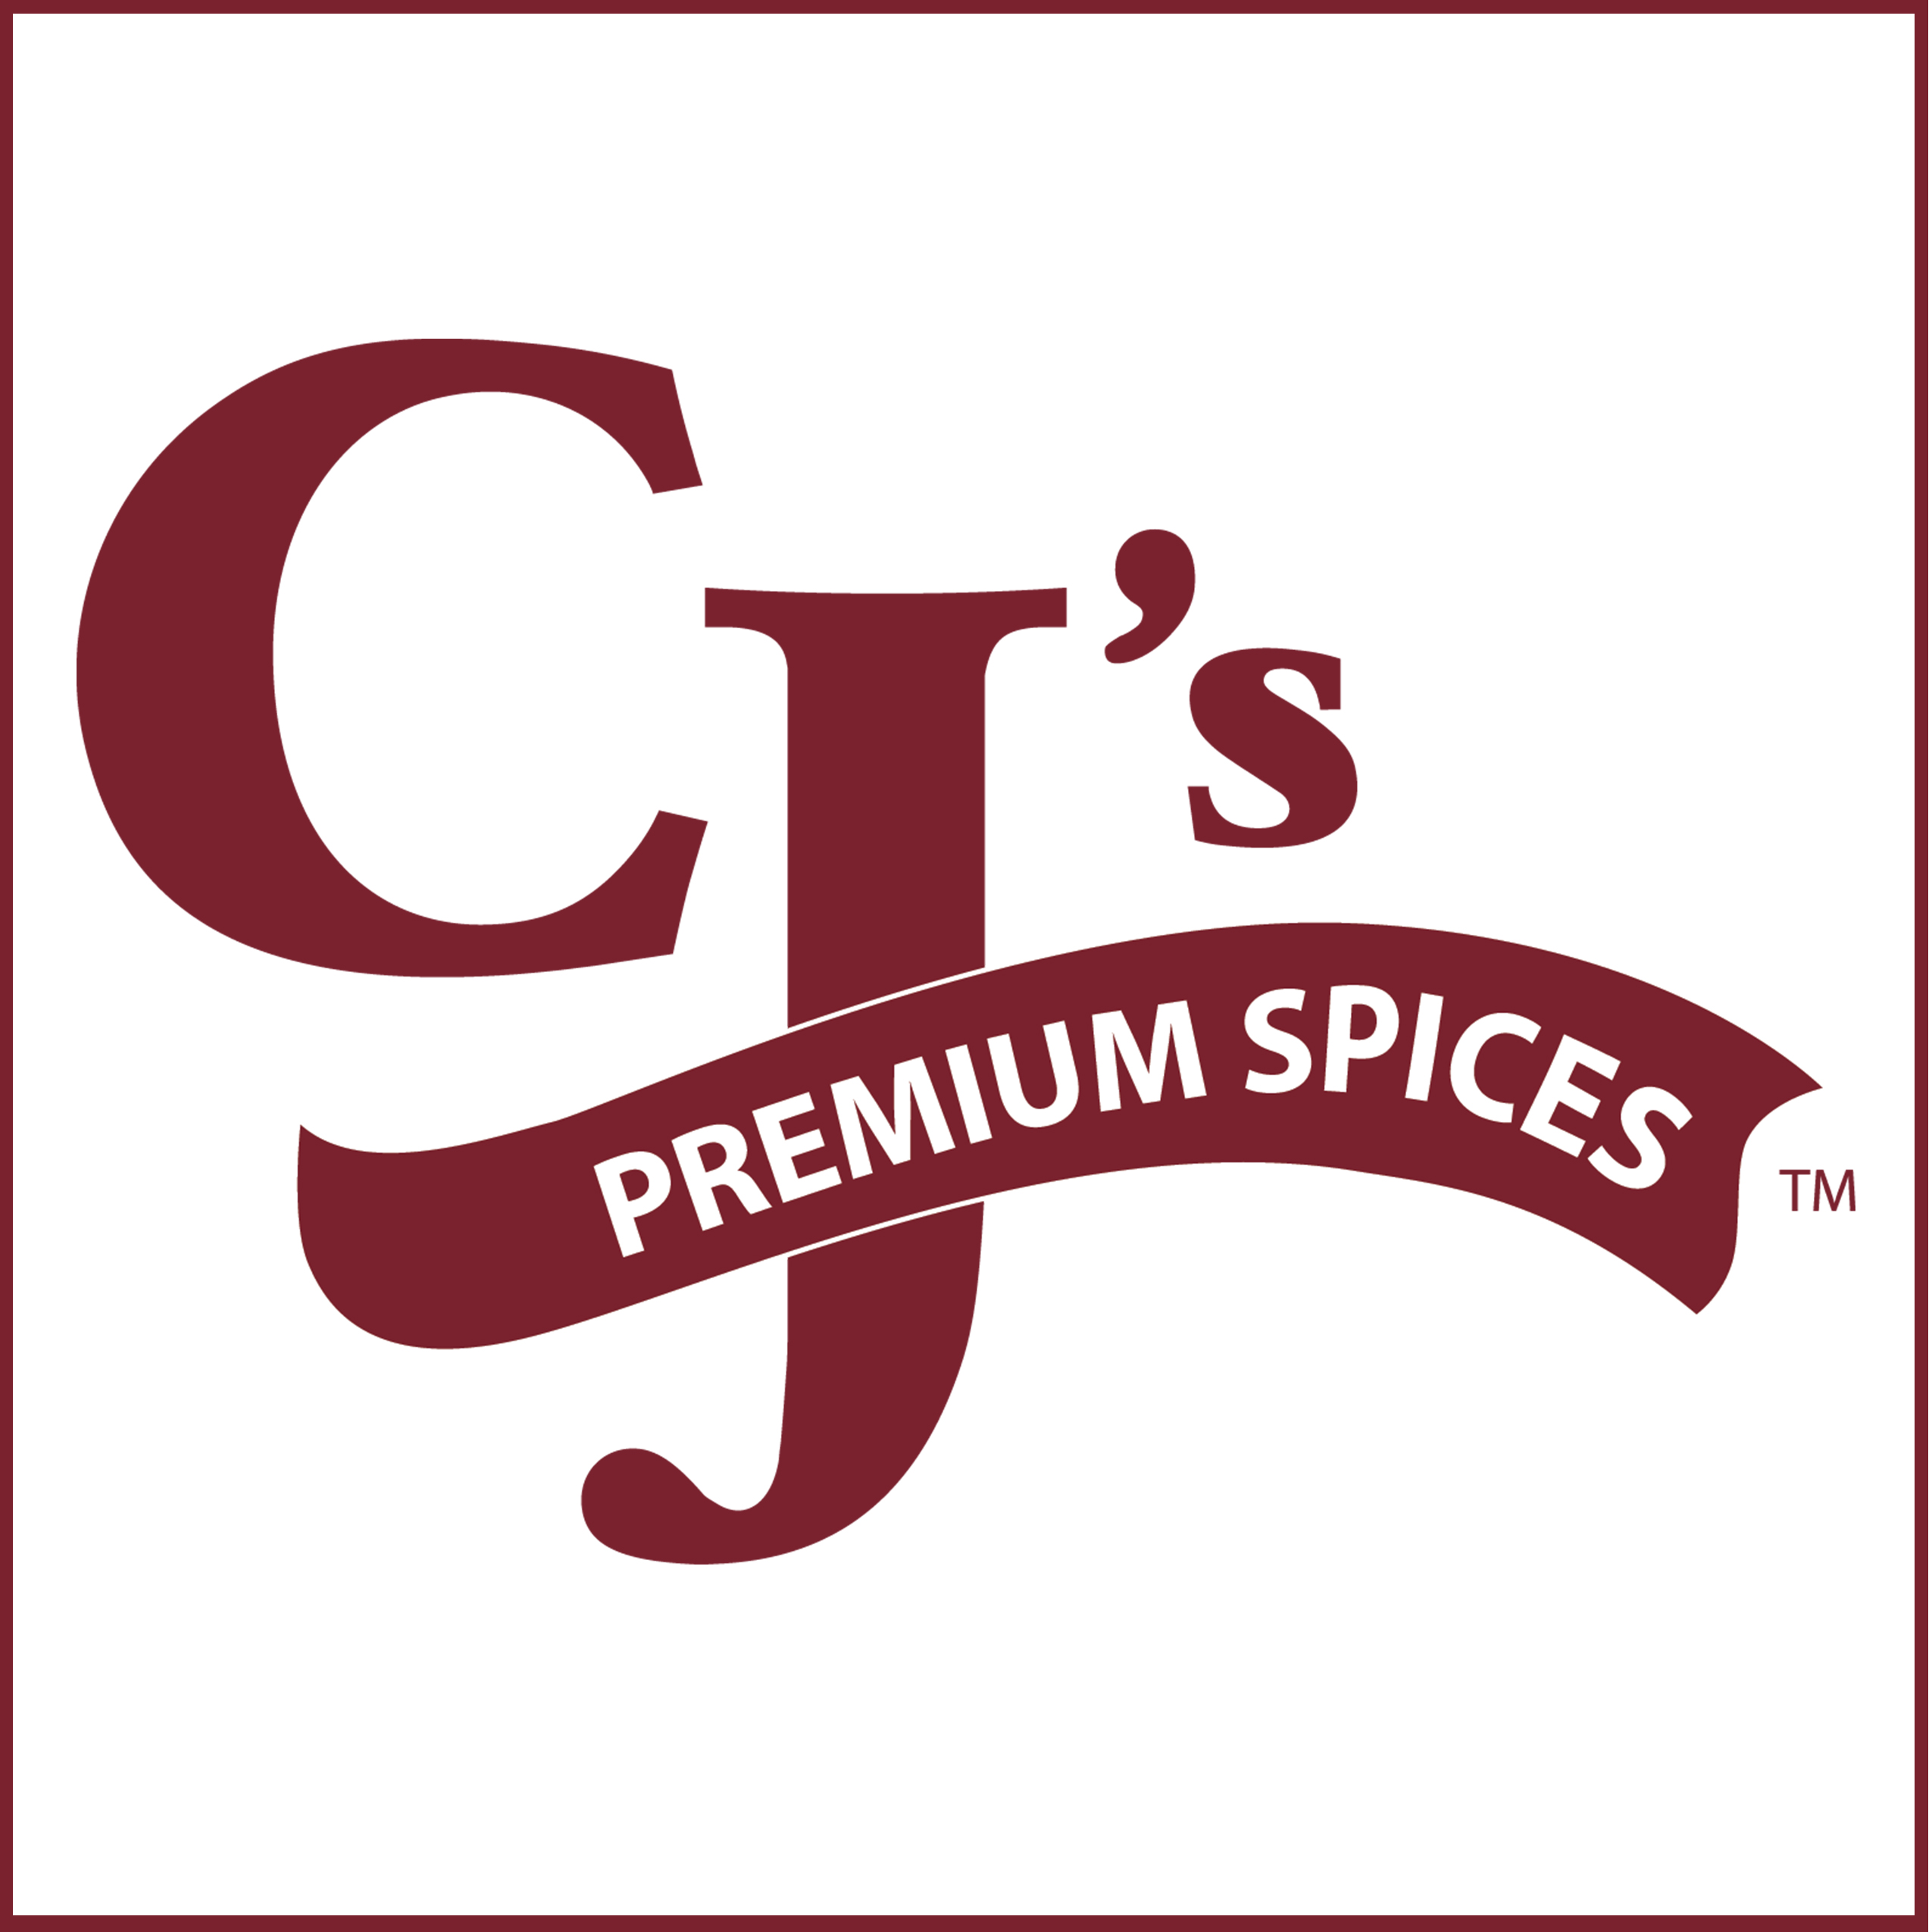 CJ's Premium Spices Corporate Video